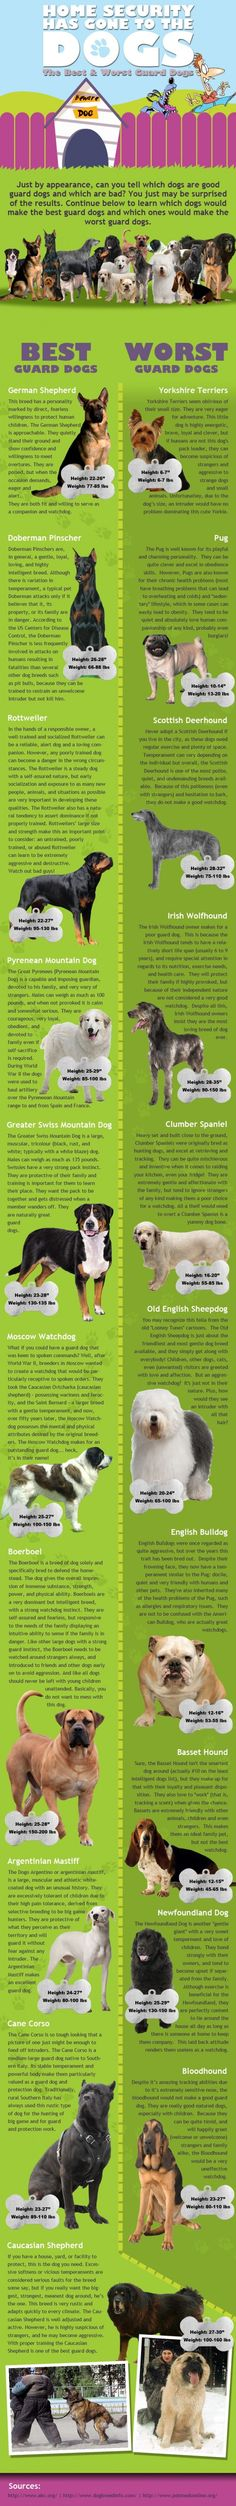 Who Let the Dogs Out?  Infographic